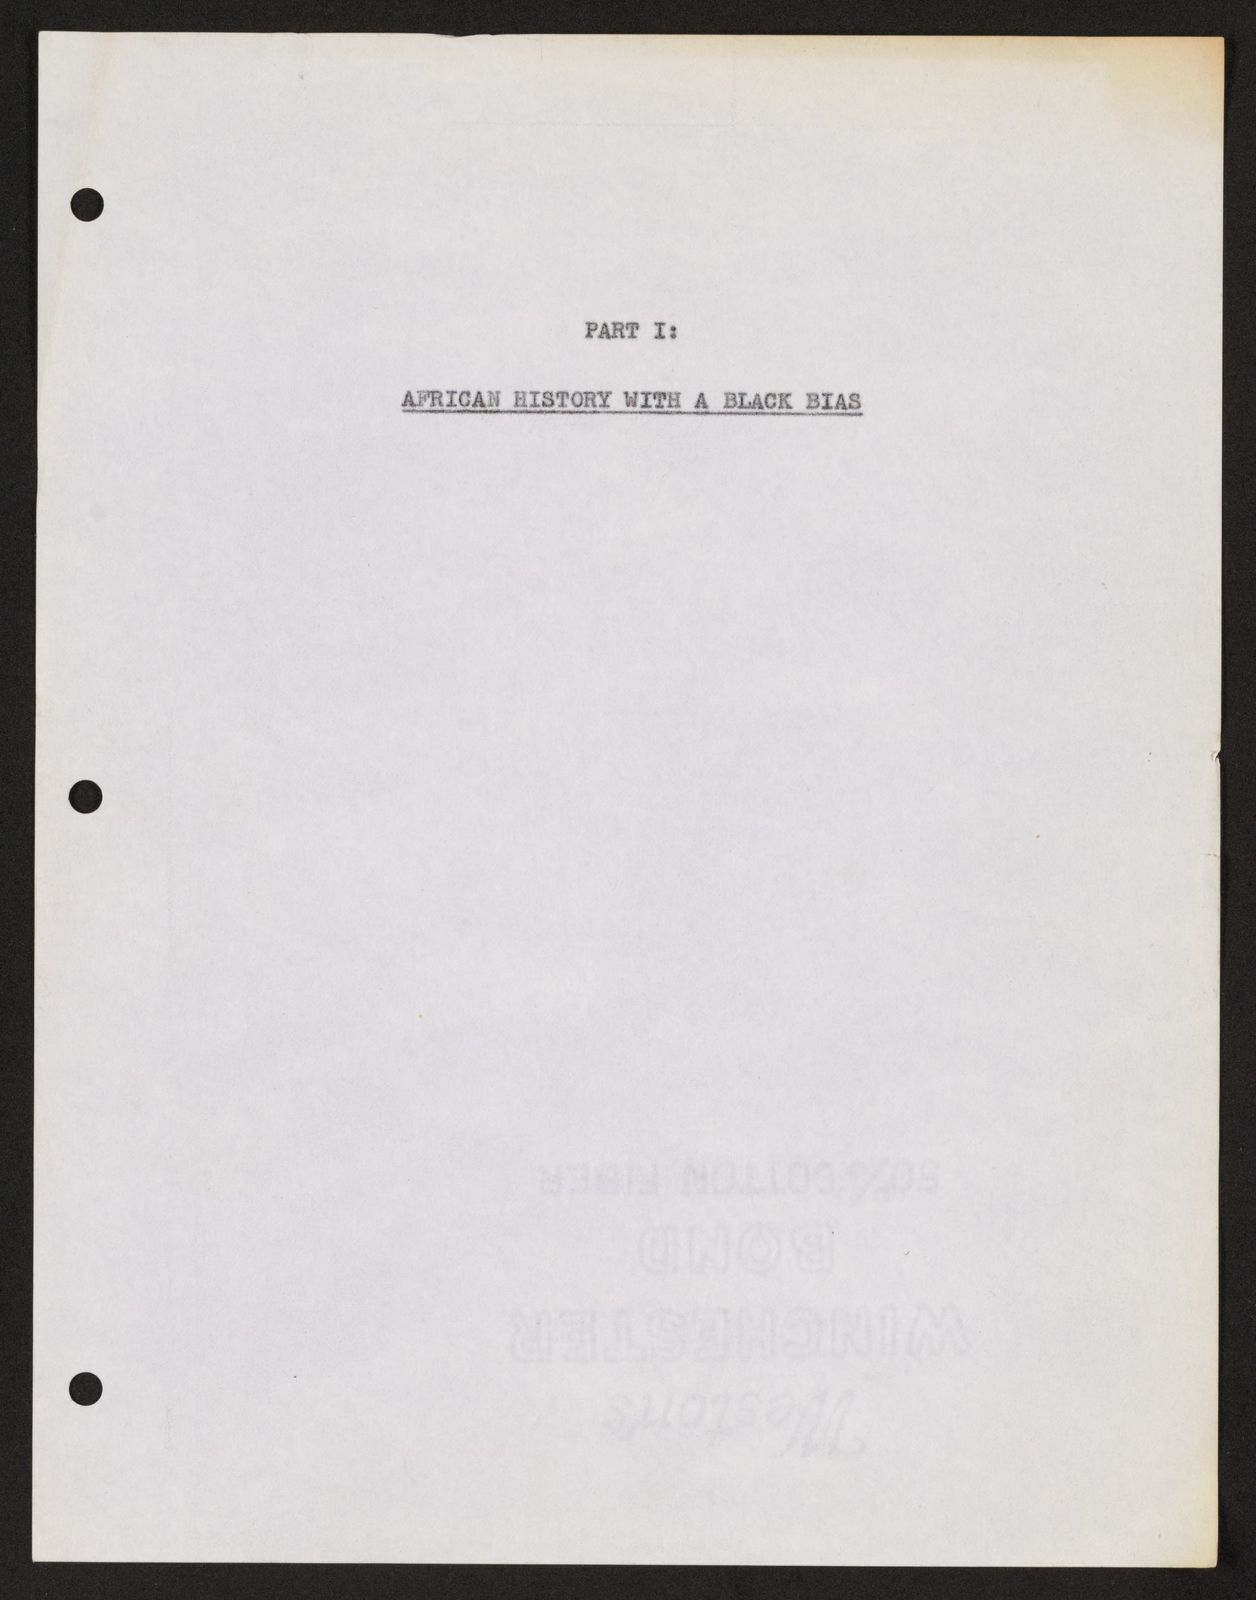 Alan Lomax Collection, Manuscripts, Black Identity Project, 1968-1970, 3000 Years of Black Poetry